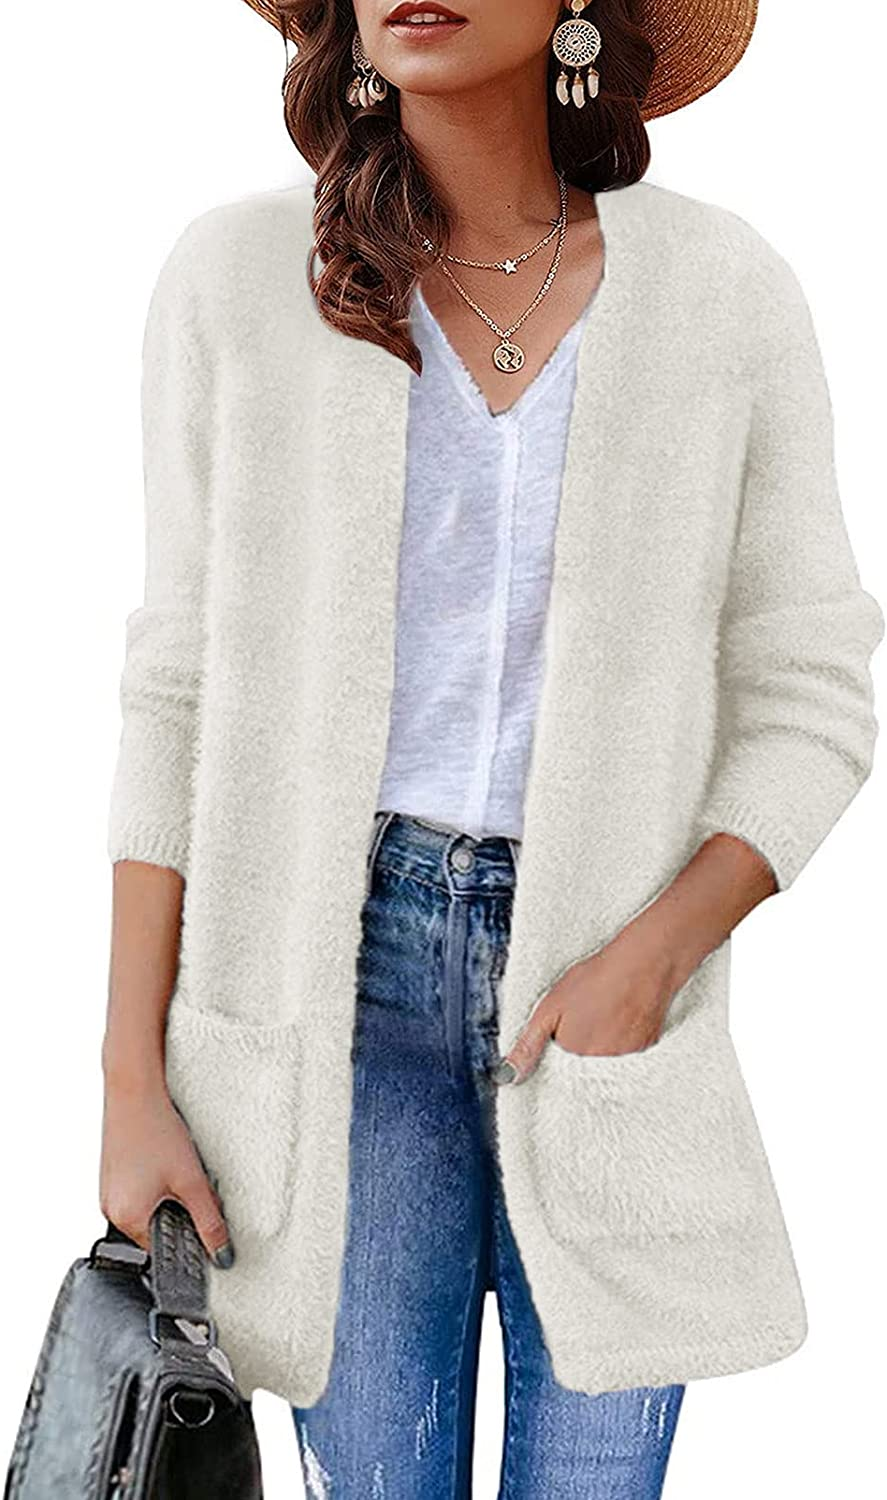 ZESICA Women's Fuzzy Cardigan Long Sleeve Open Front Casual Sweater with Pockets